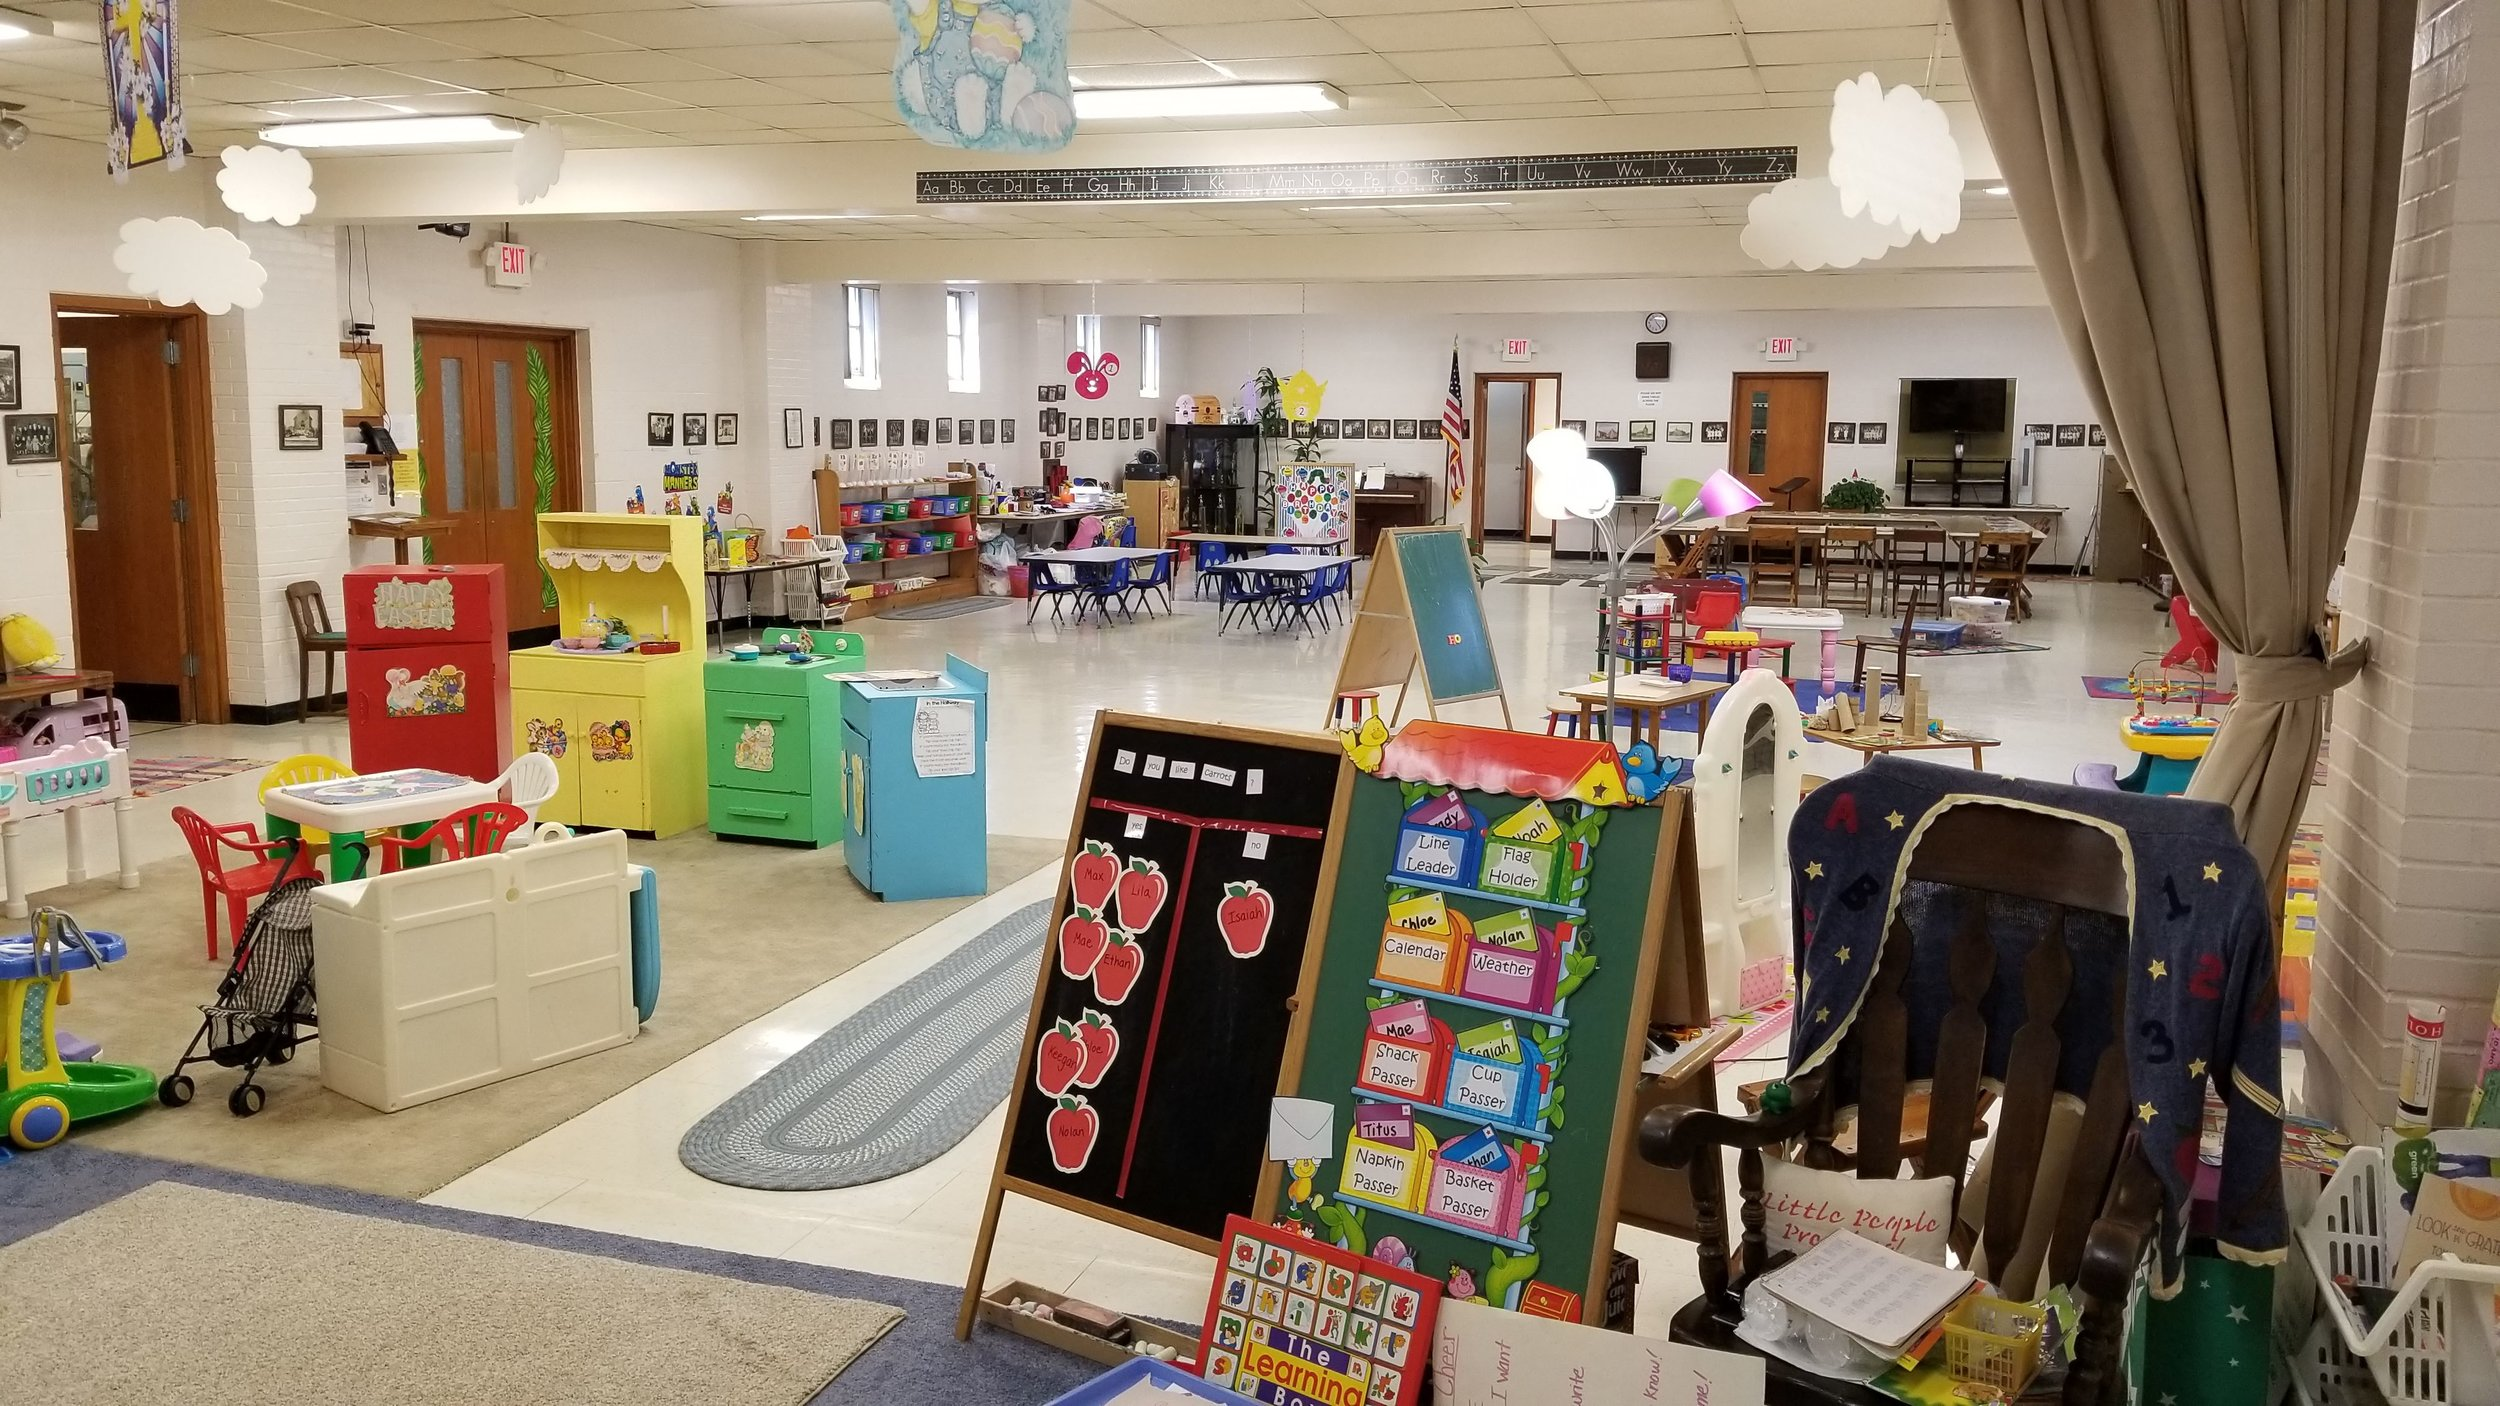 There are tons of activities here to keep the children learning and growing while still having fun. -